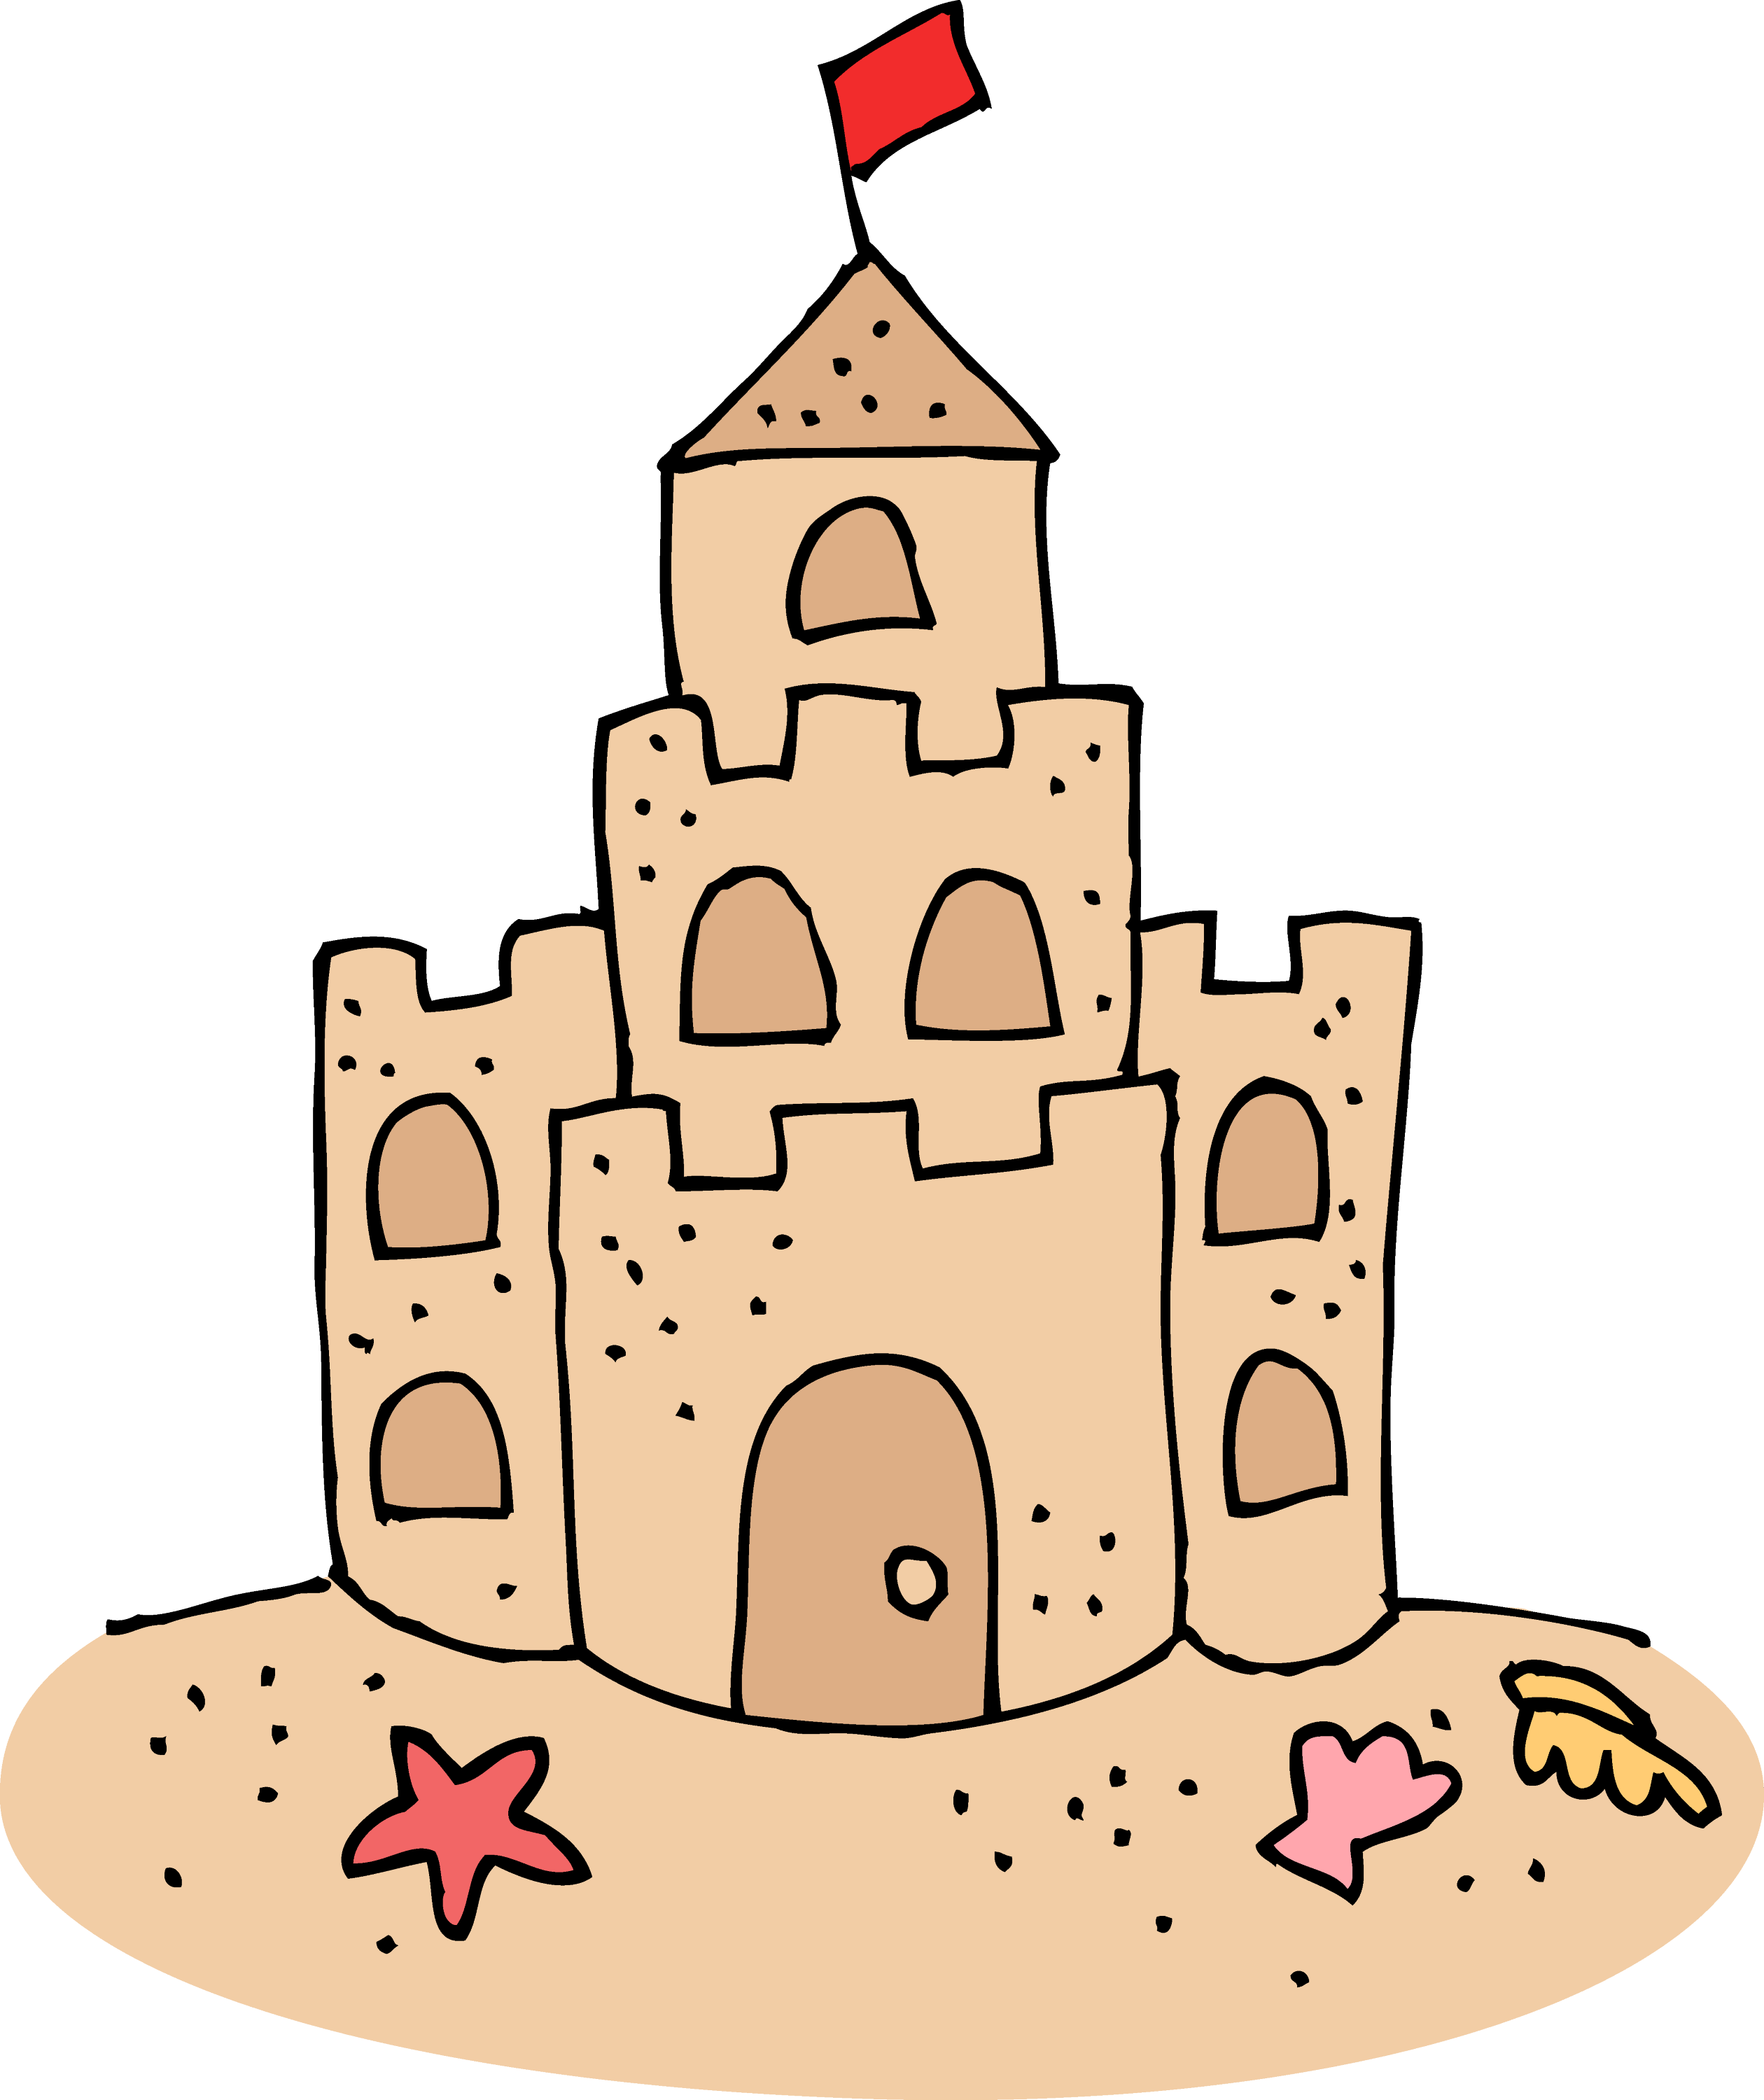 cute sand castle clipart free clip art rh sweetclipart com clip art for free daffodils clipart for free download